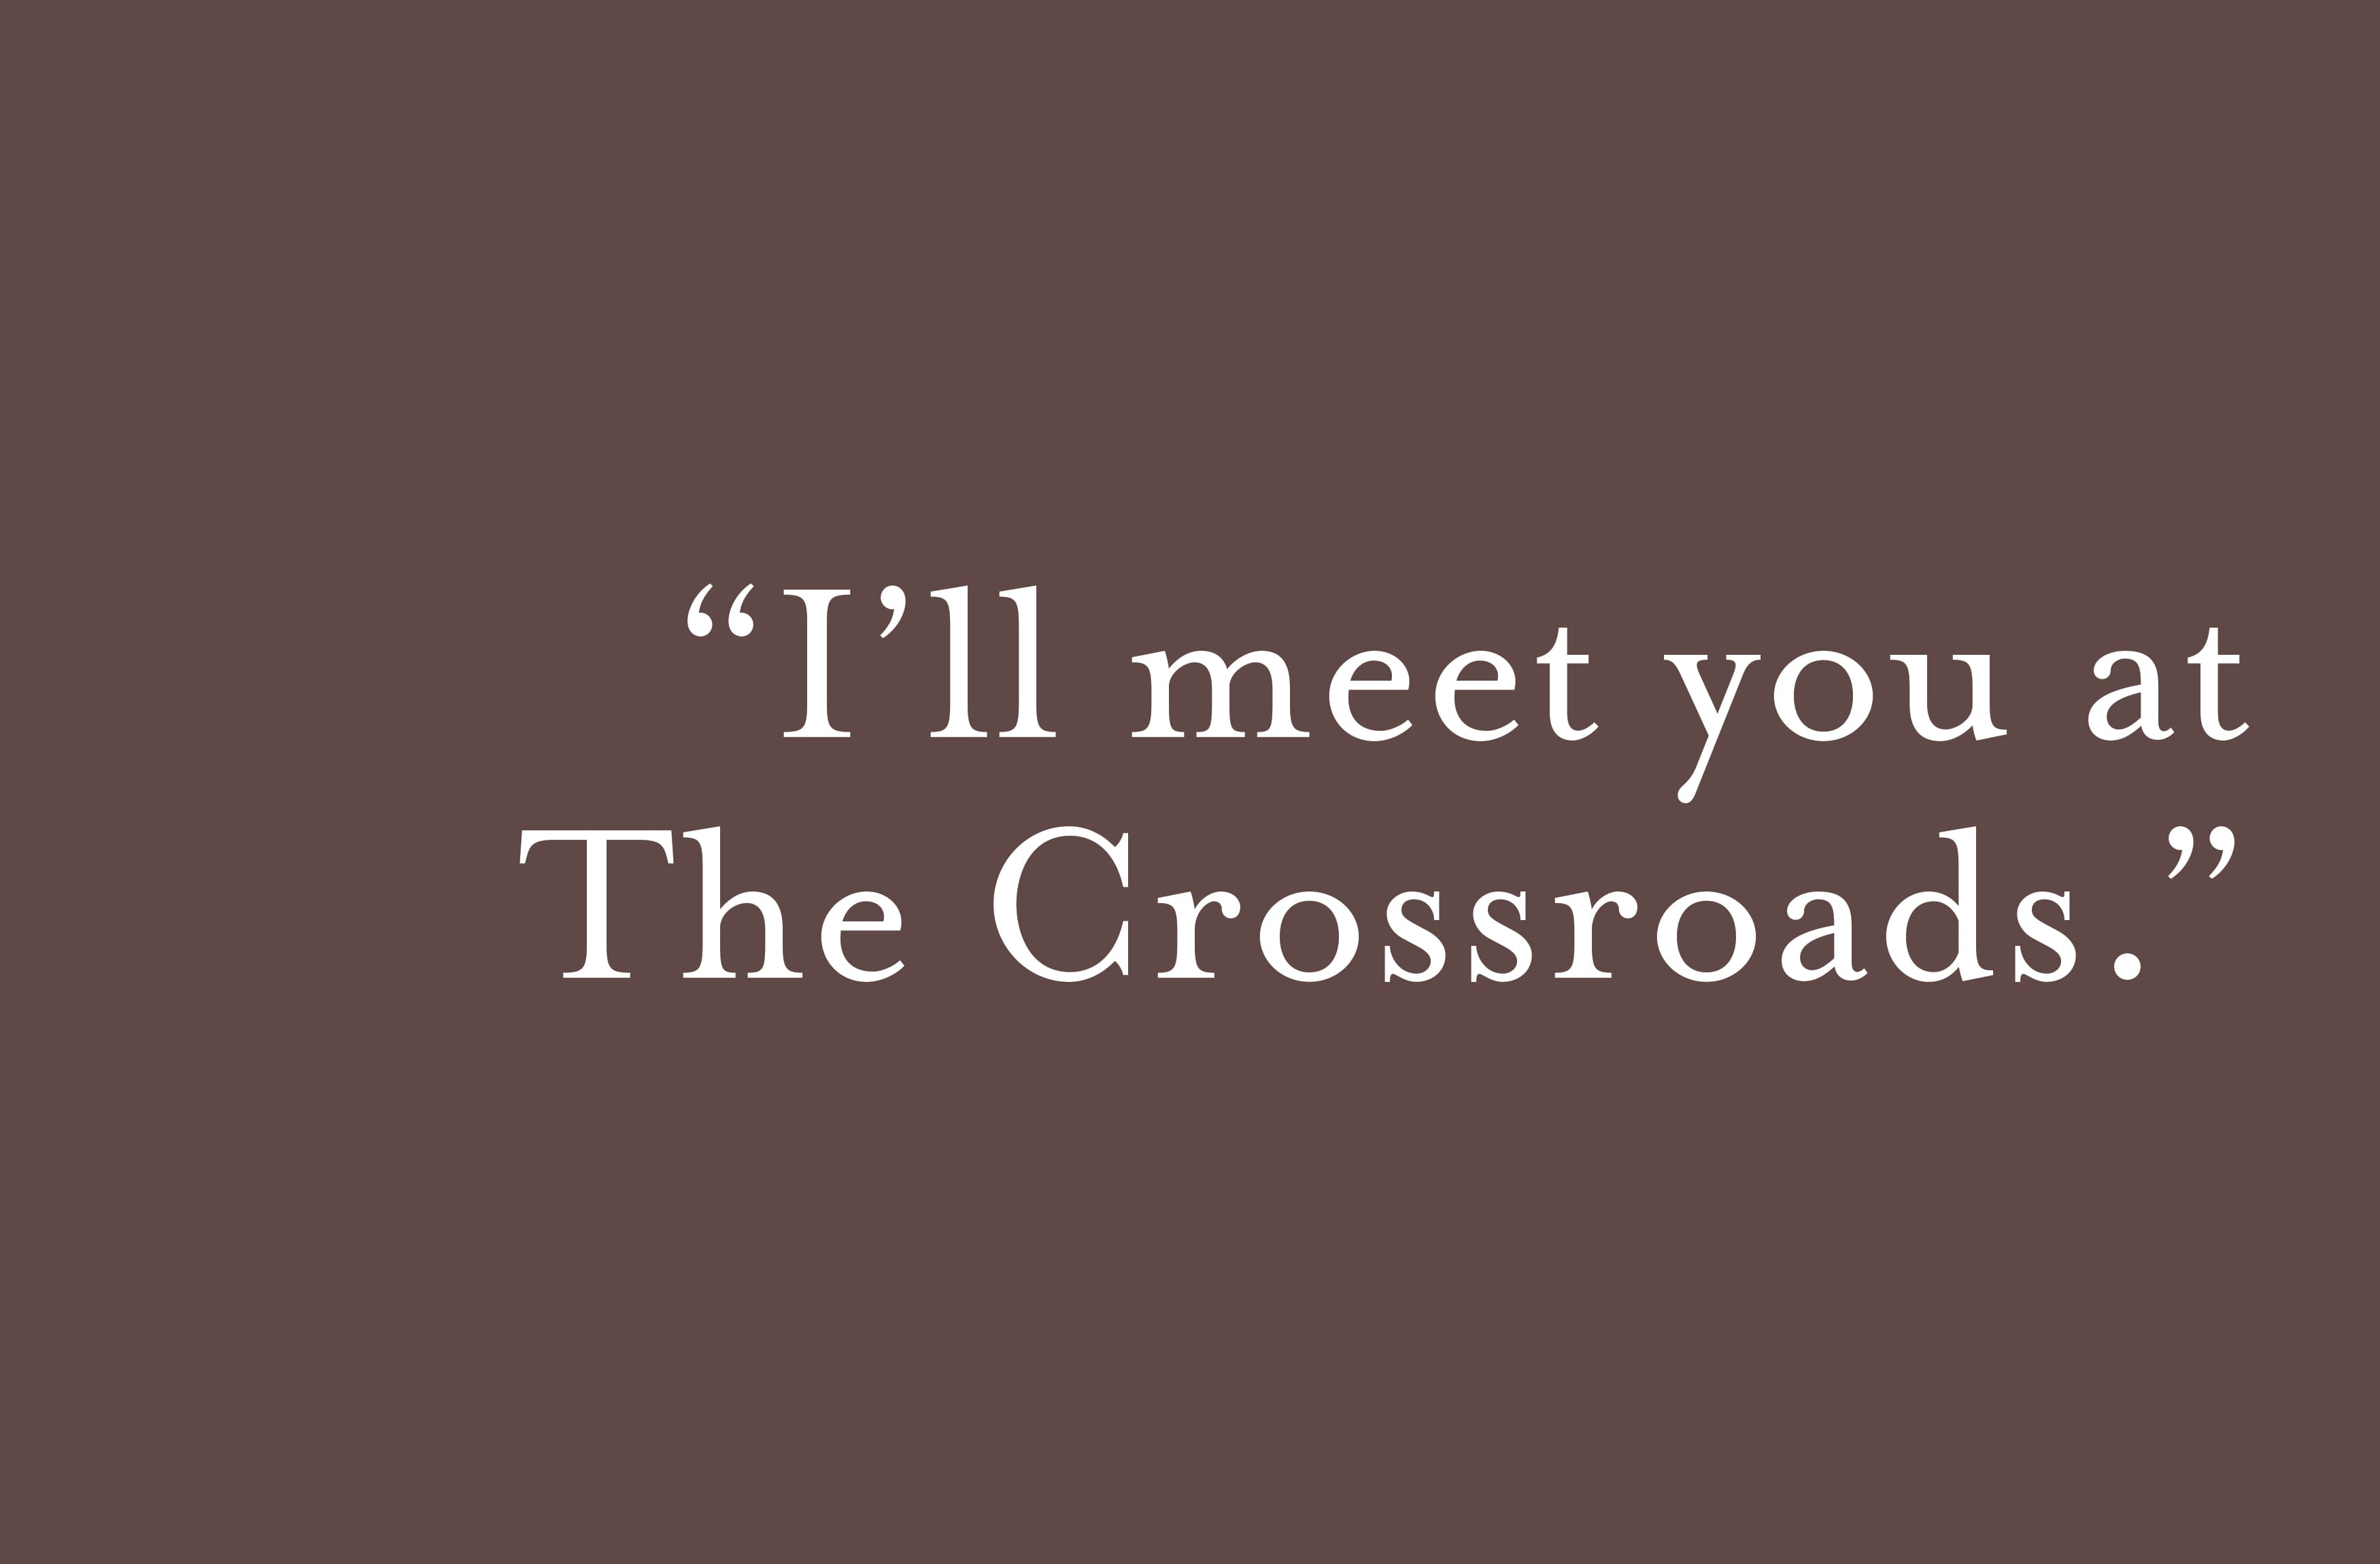 The Crossroads, a mixed-use development located in Omaha, Nebraska. Branding and Logo Design.